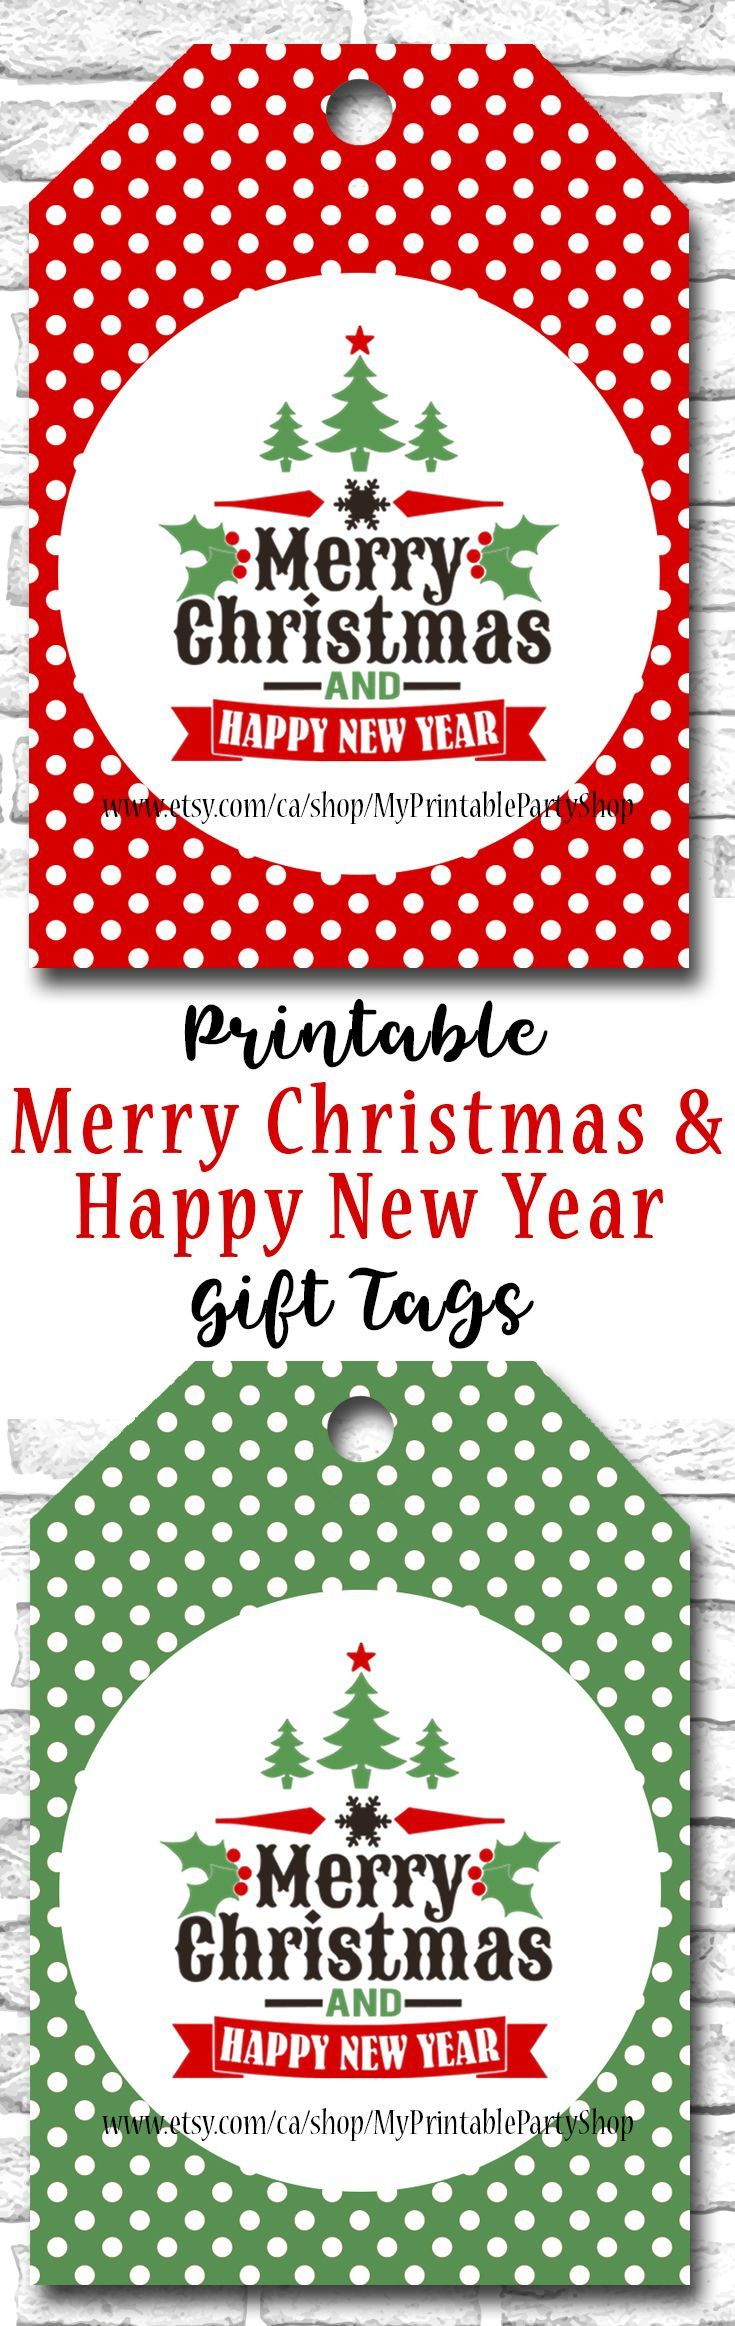 printable holiday gift tags christmas gift tags merry christmas and happy new year gift tags red green polka dot instant download wwwetsycom